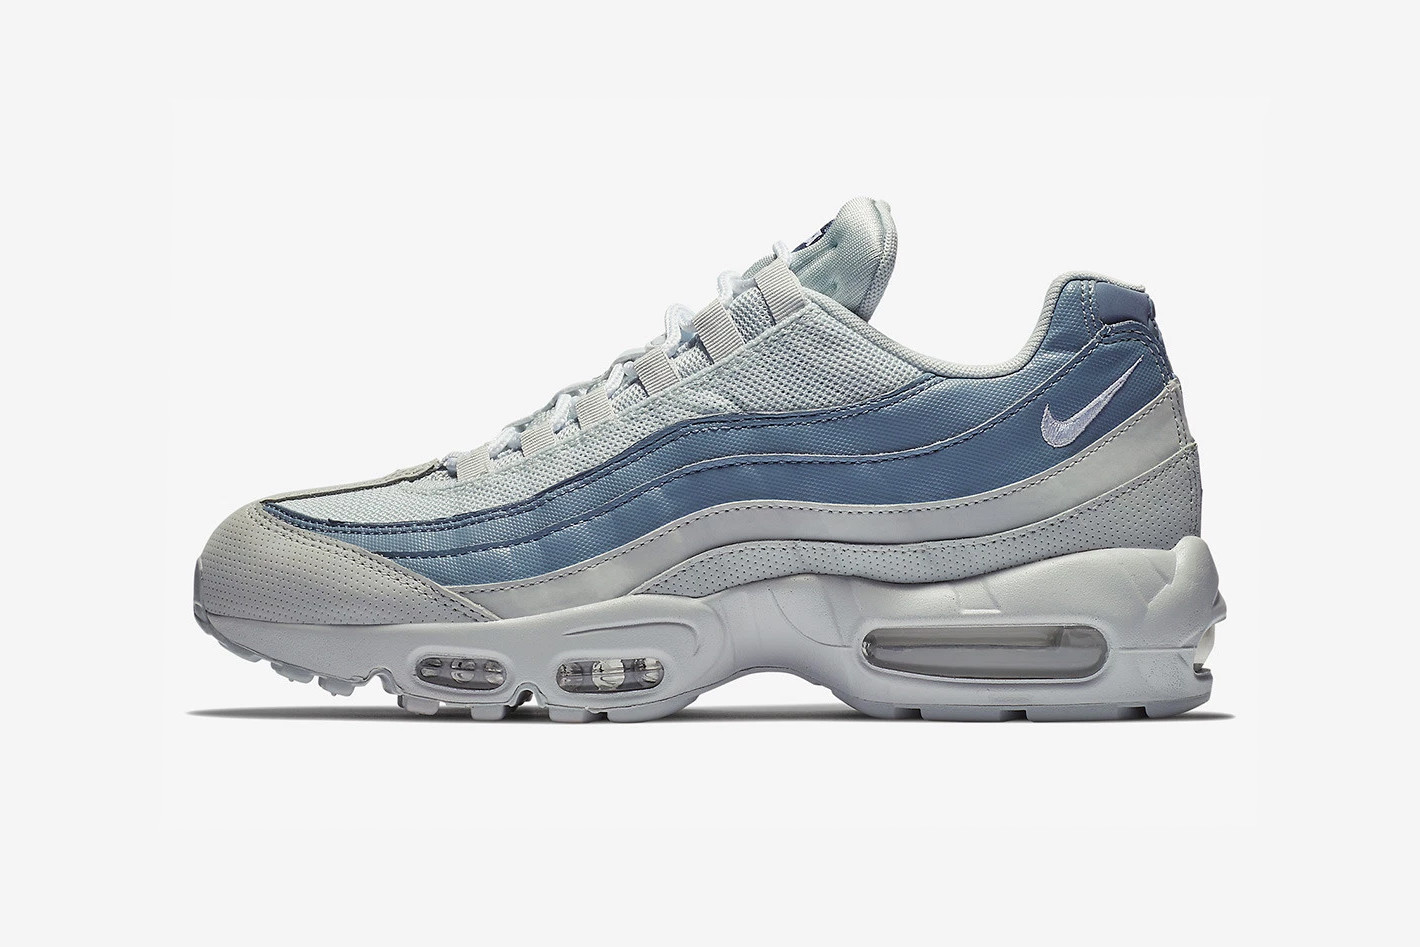 The Nike Air Max 95 Is Reworked in a